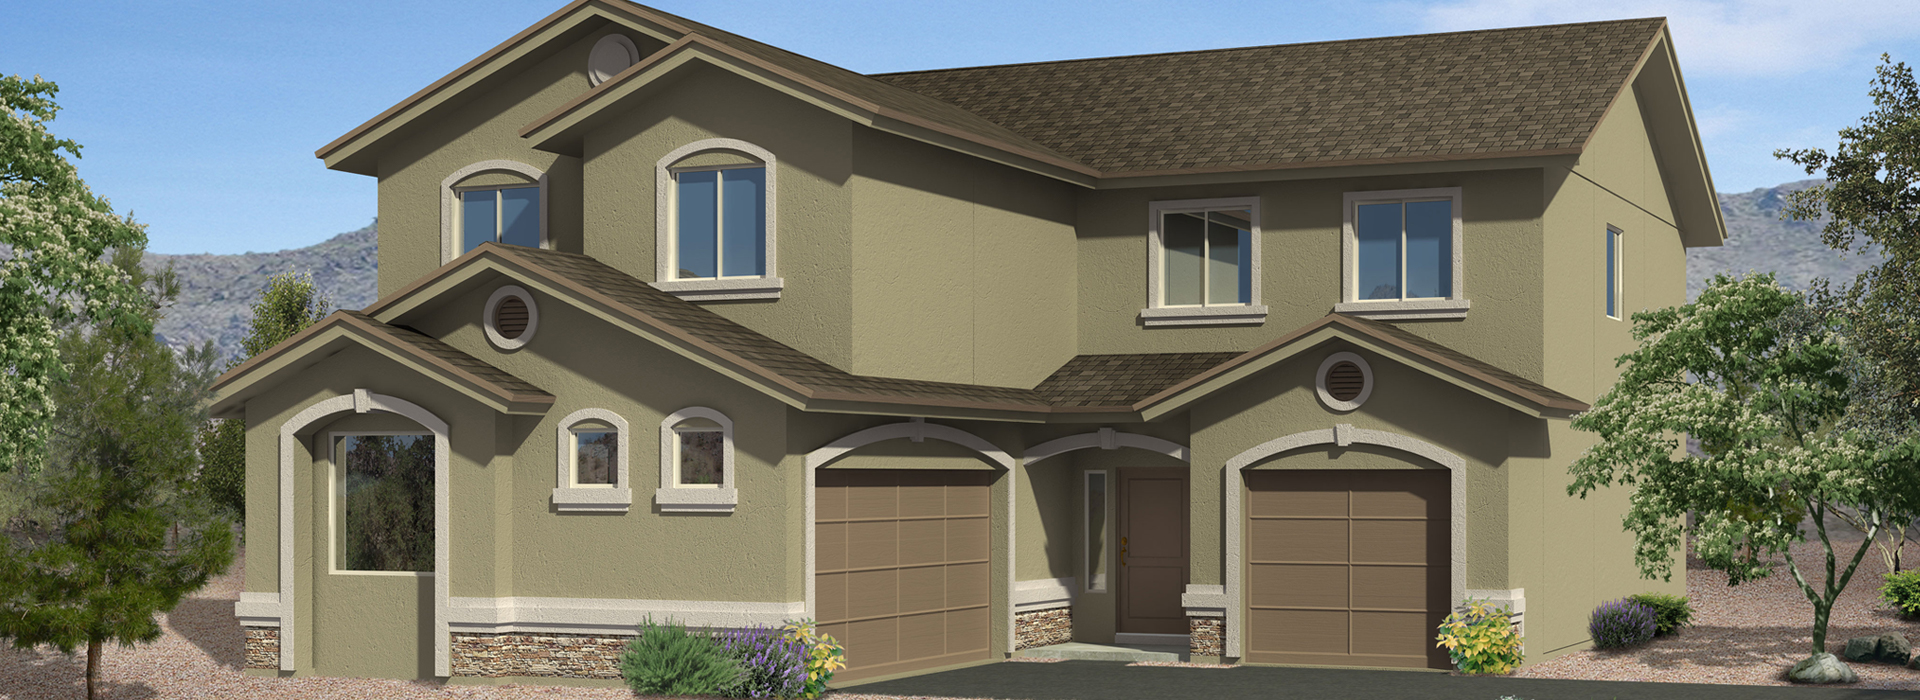 The Carmel Model by CareFree Homes